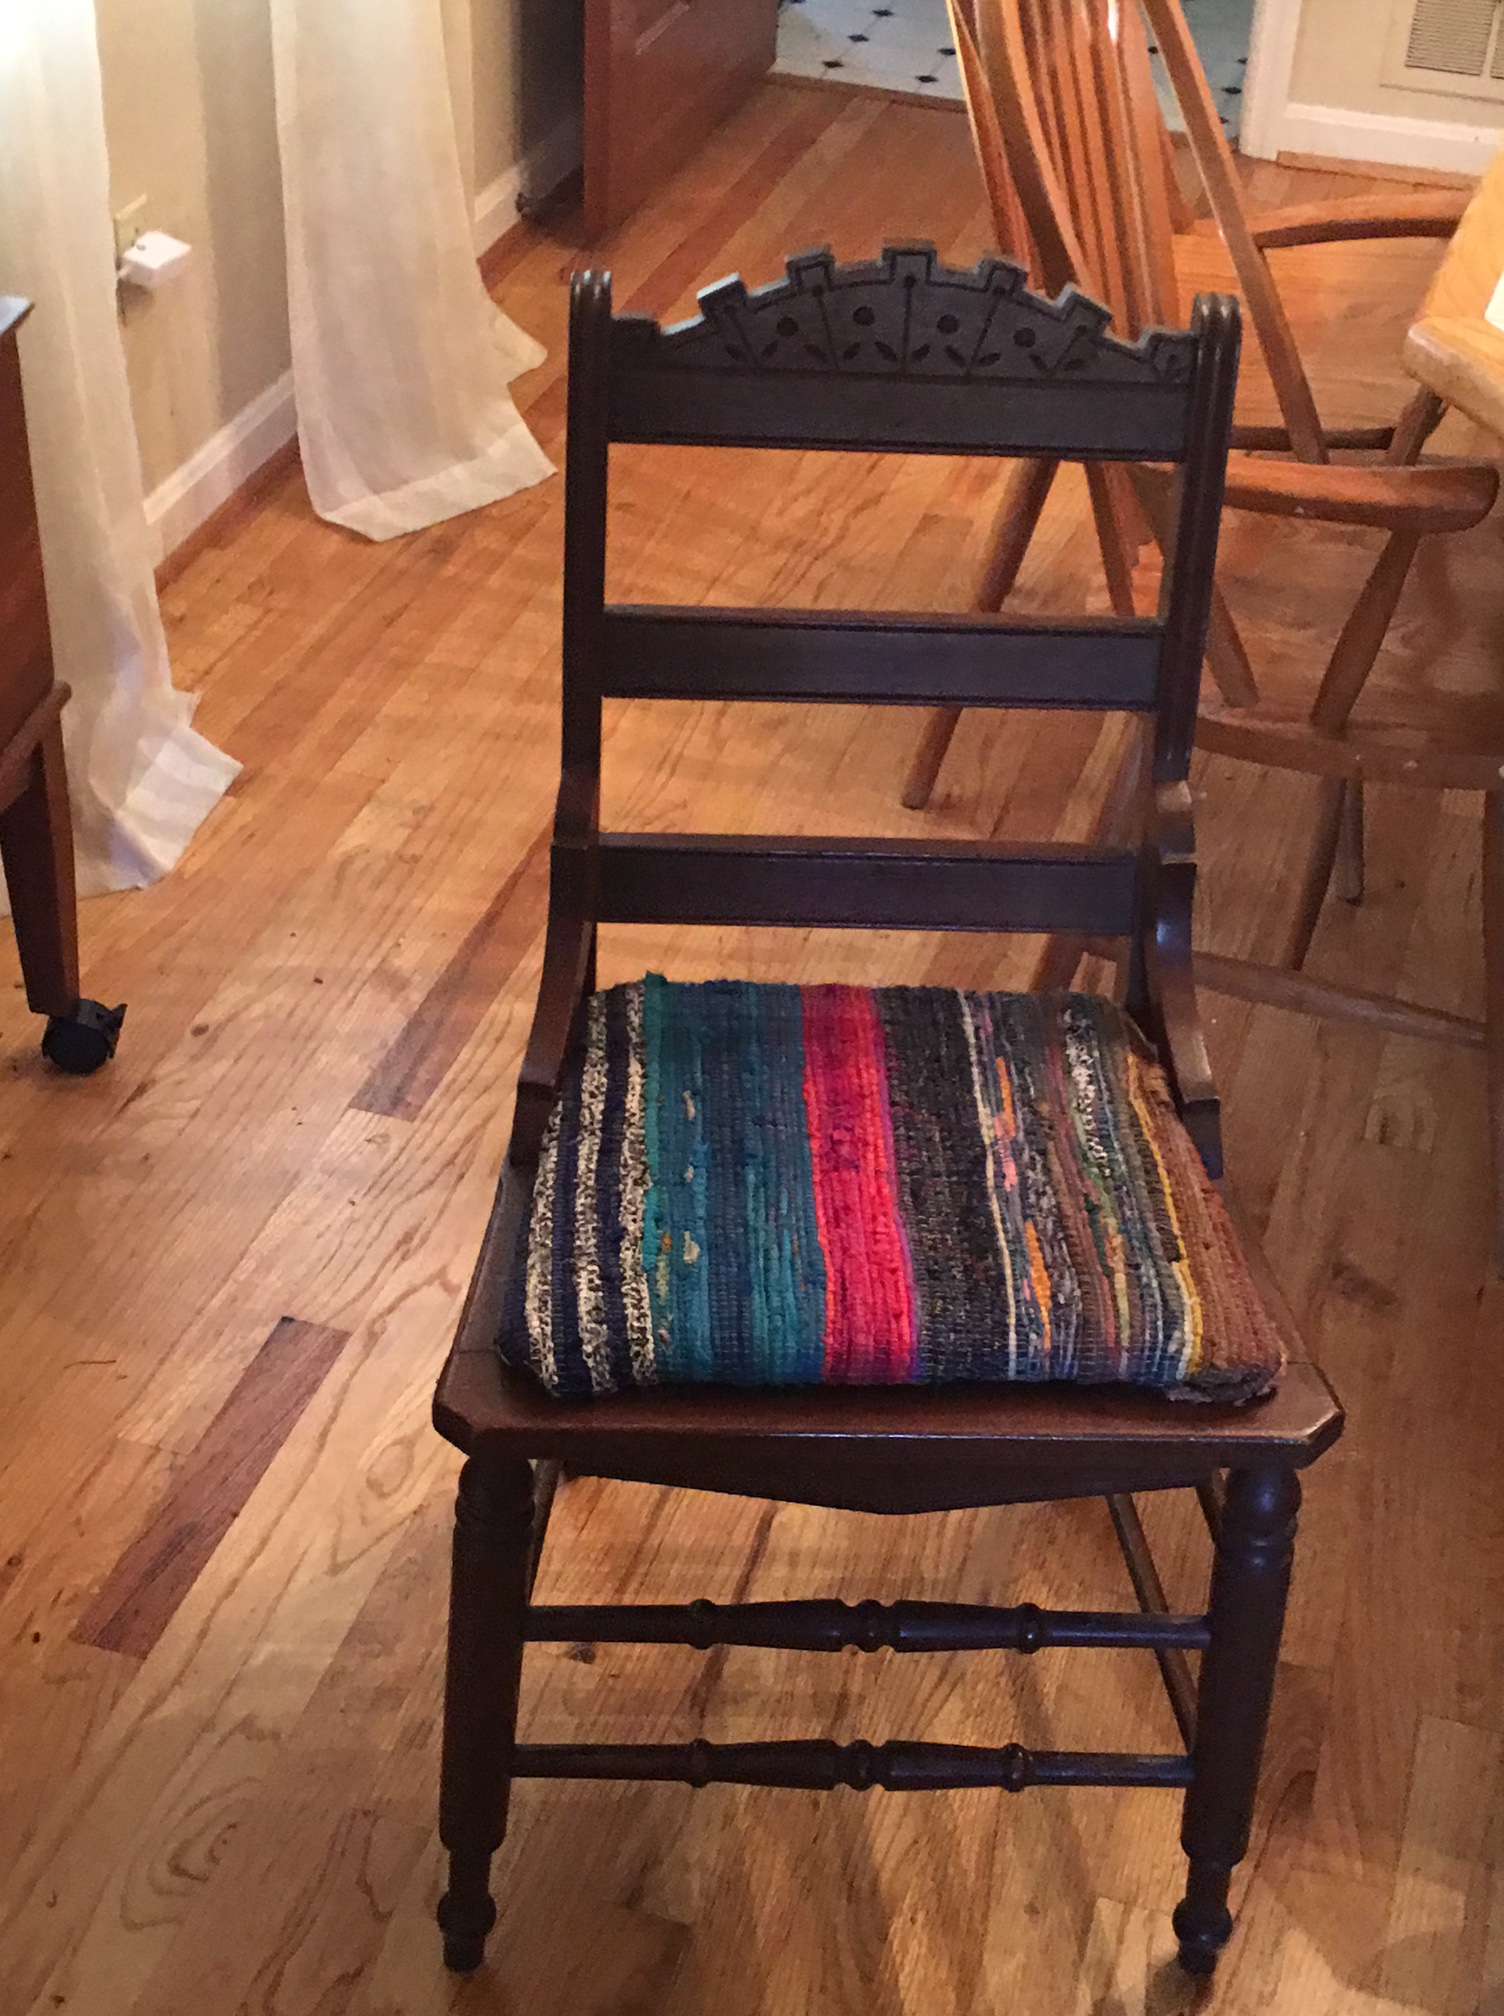 My Mother In Law Gave Us A Pair Of Chairs. Theyu0027re Eastlake And Quite  Lovely, But The Needlepoint Seats Were Not Our Style. I Was At World Market  Yesterday ...